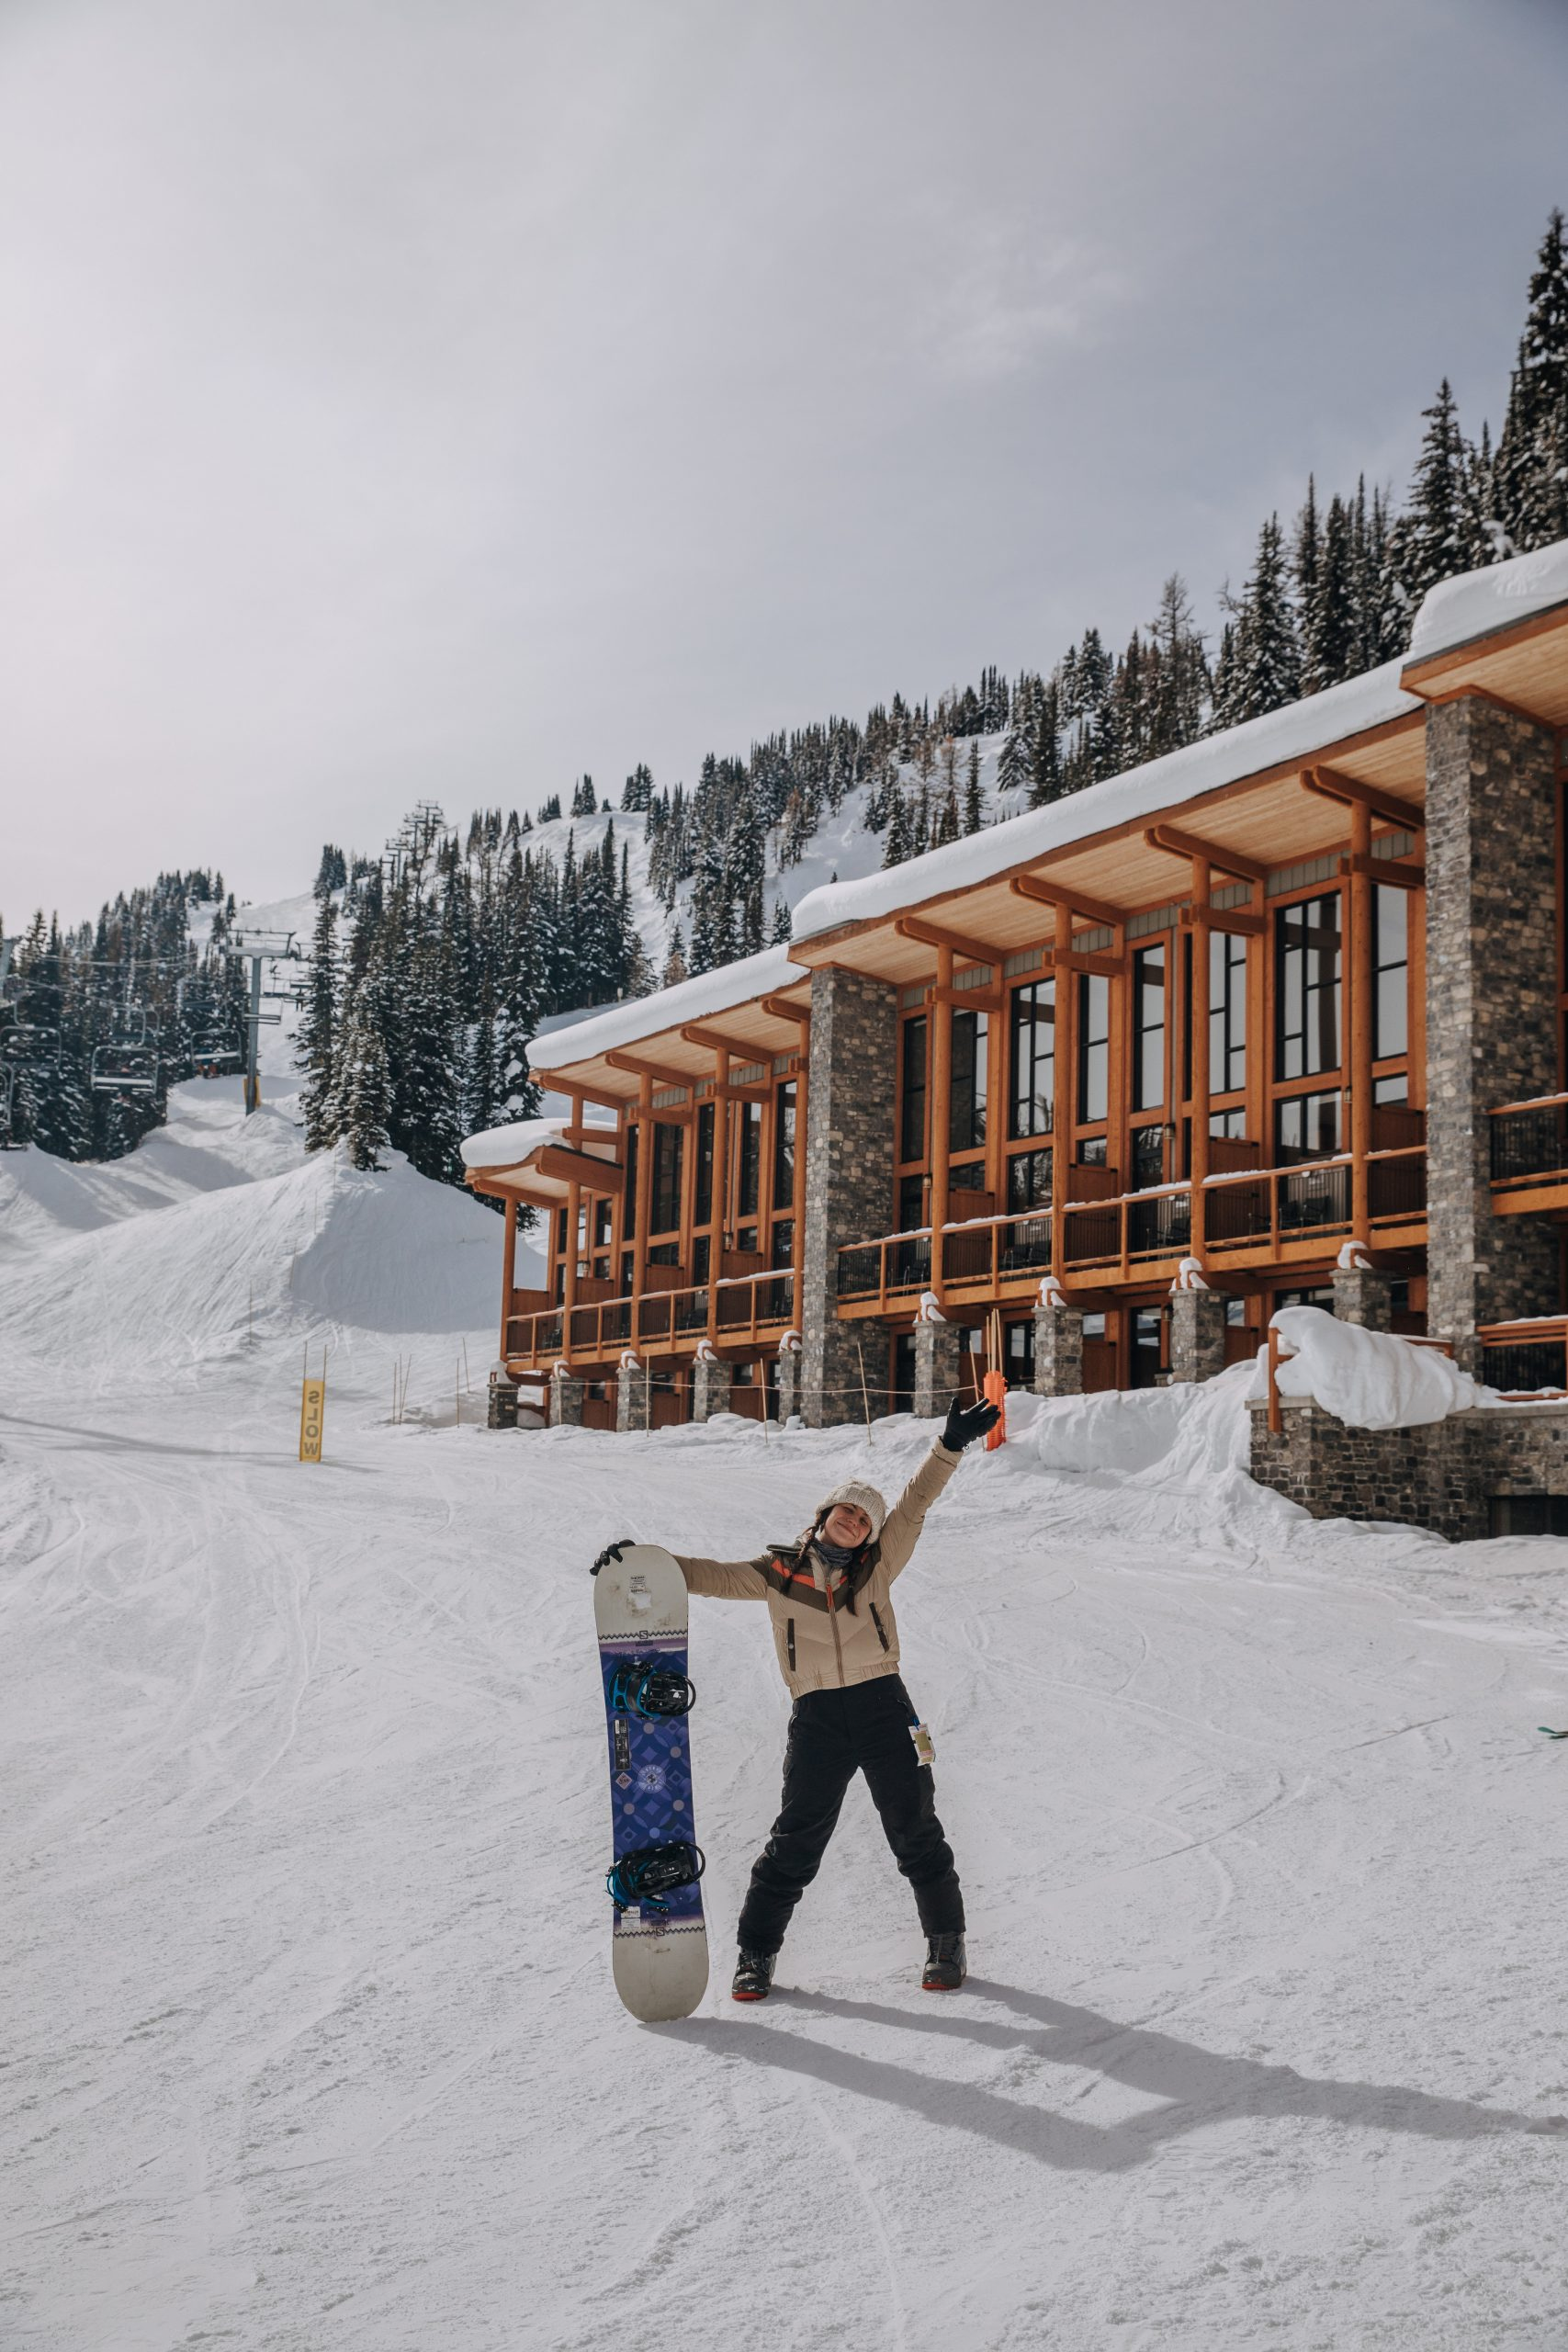 The Ultimate Banff Winter Guide - girl snowboarding in Banff